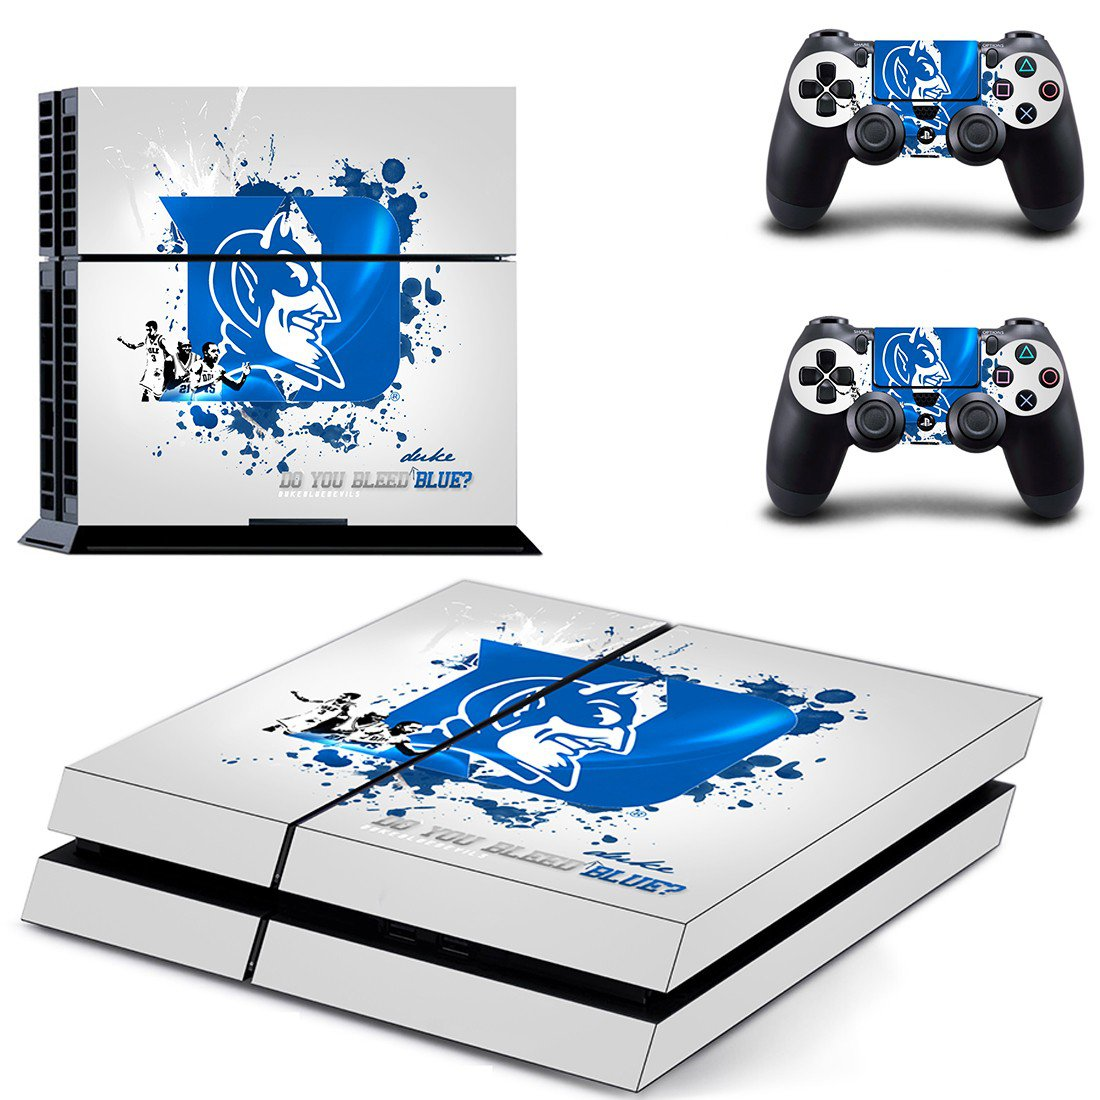 Duke blue devils ps4 skin decal for console and controllers